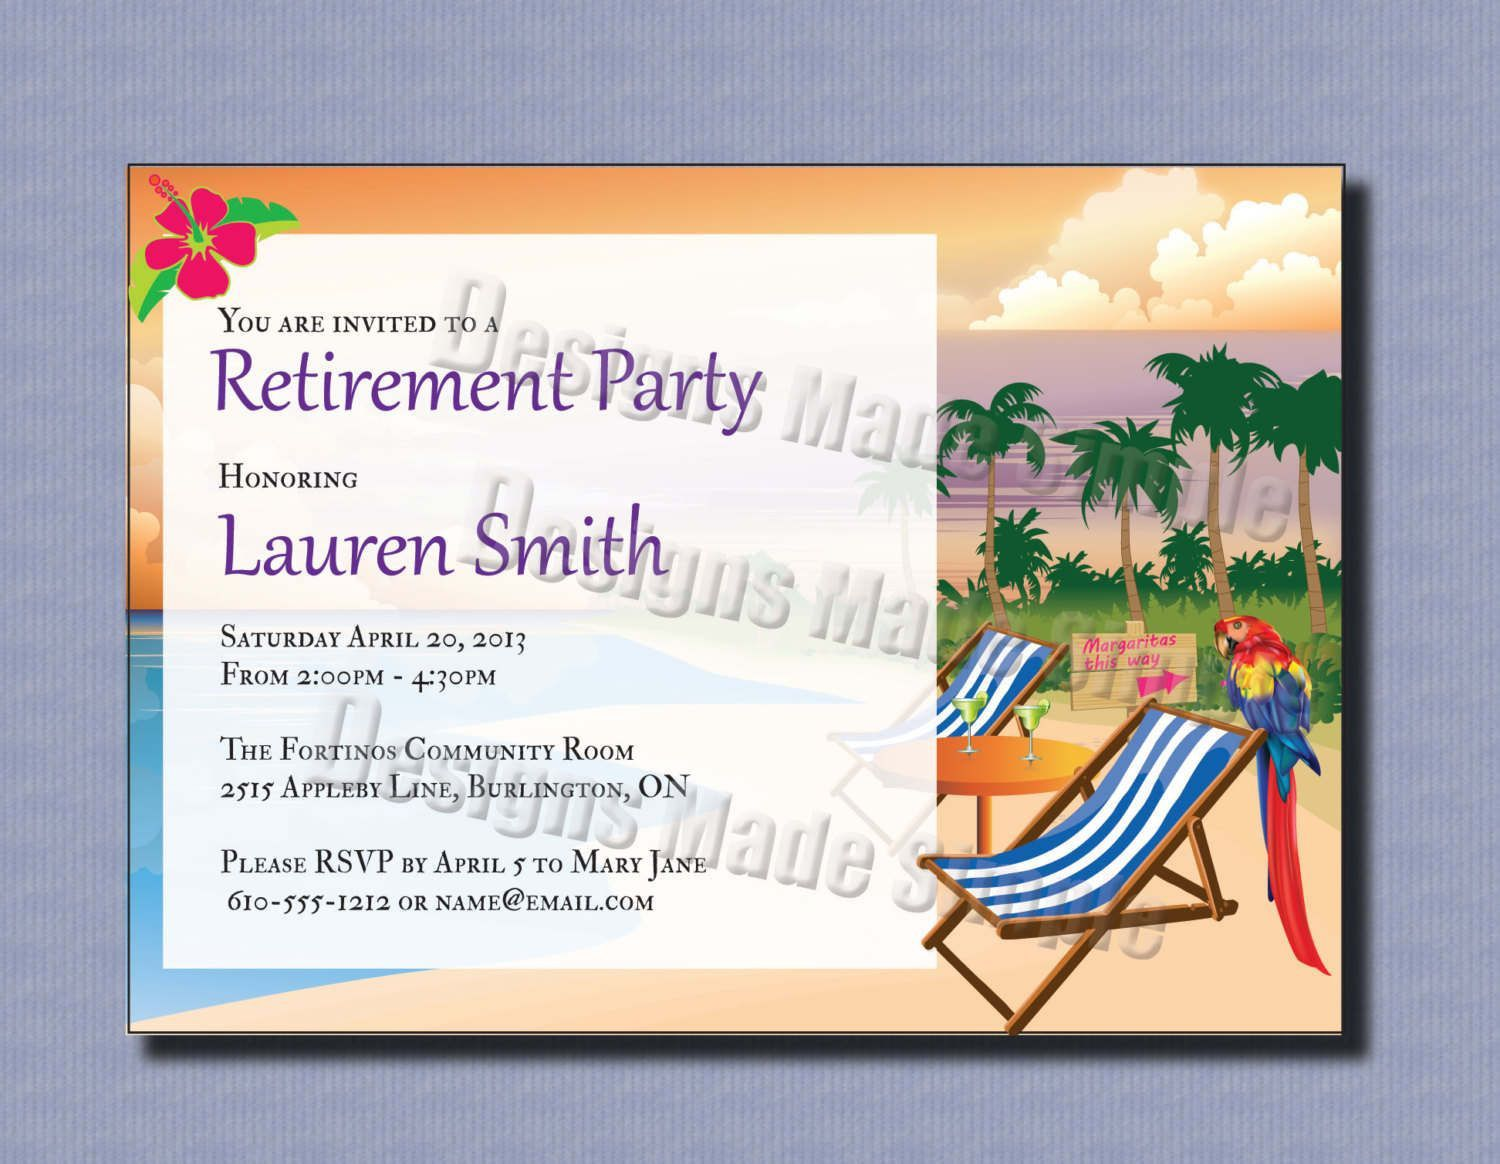 001 Striking Retirement Party Invitation Template Free Printable High Resolution Full